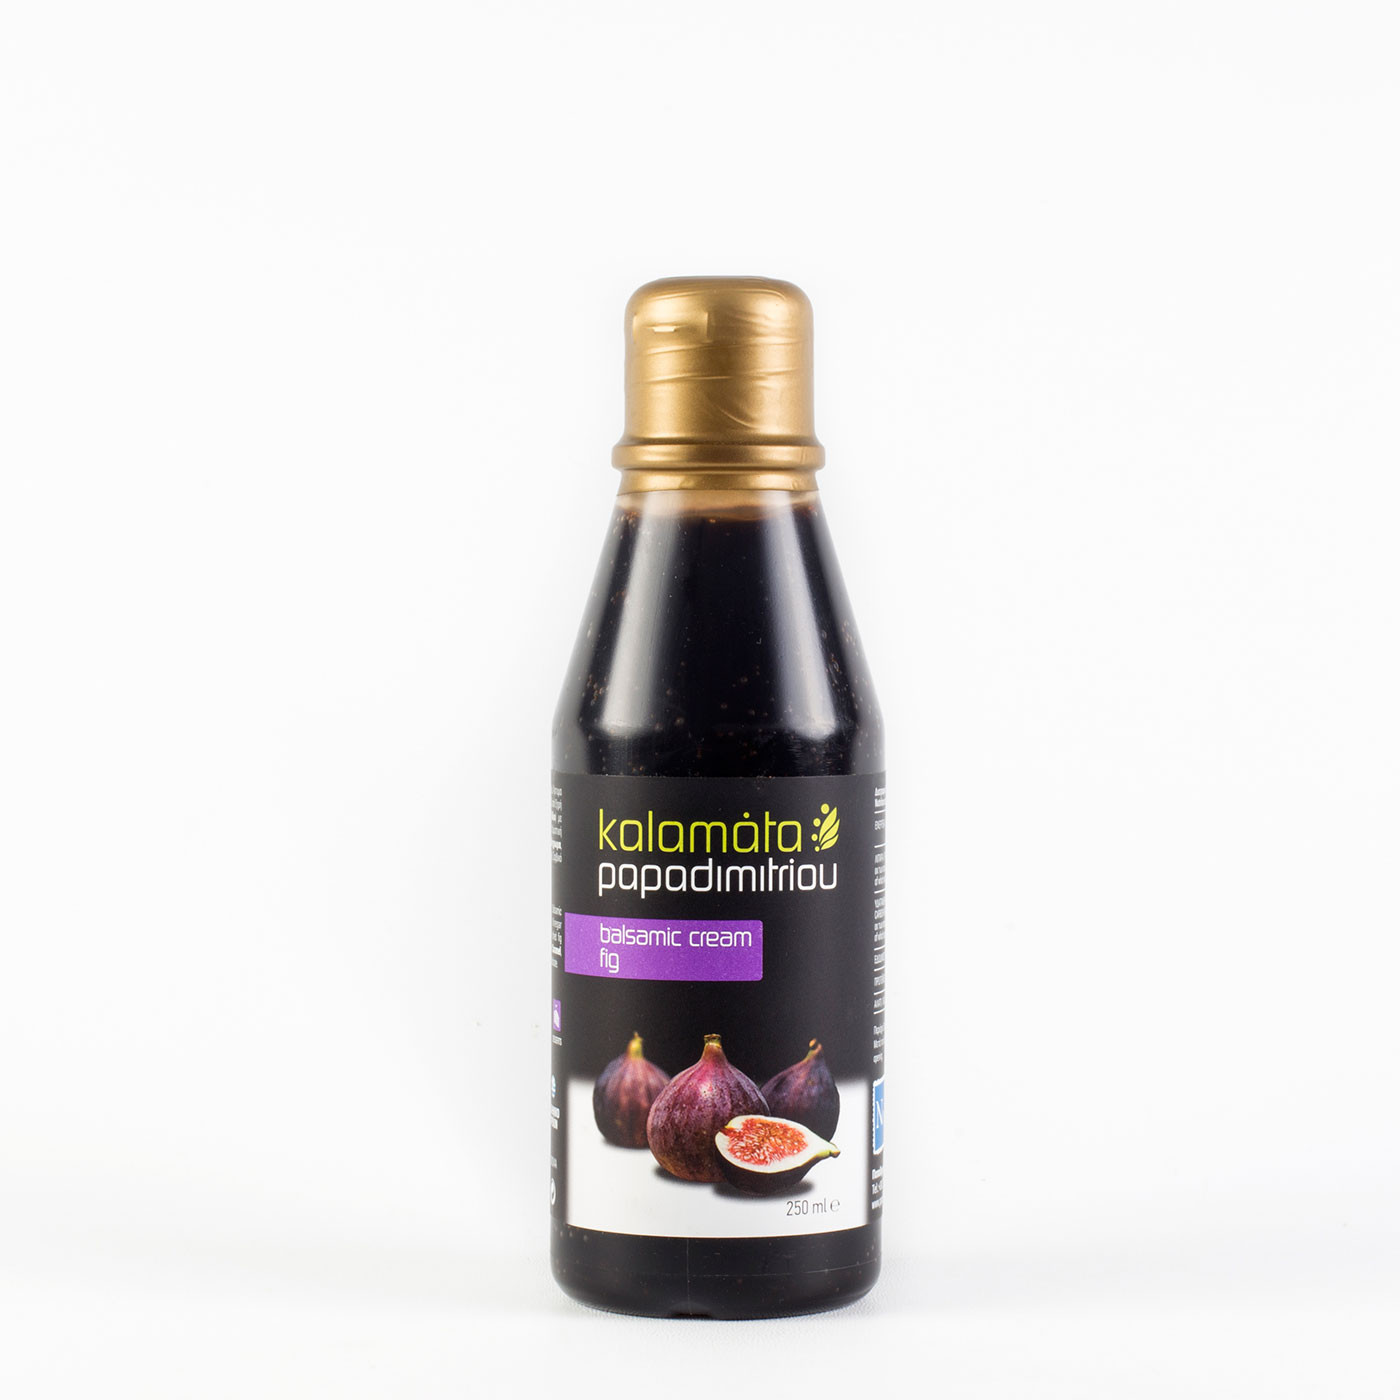 "Balsamic cream fig ""kalamata papadimitriou"" 250 ml."